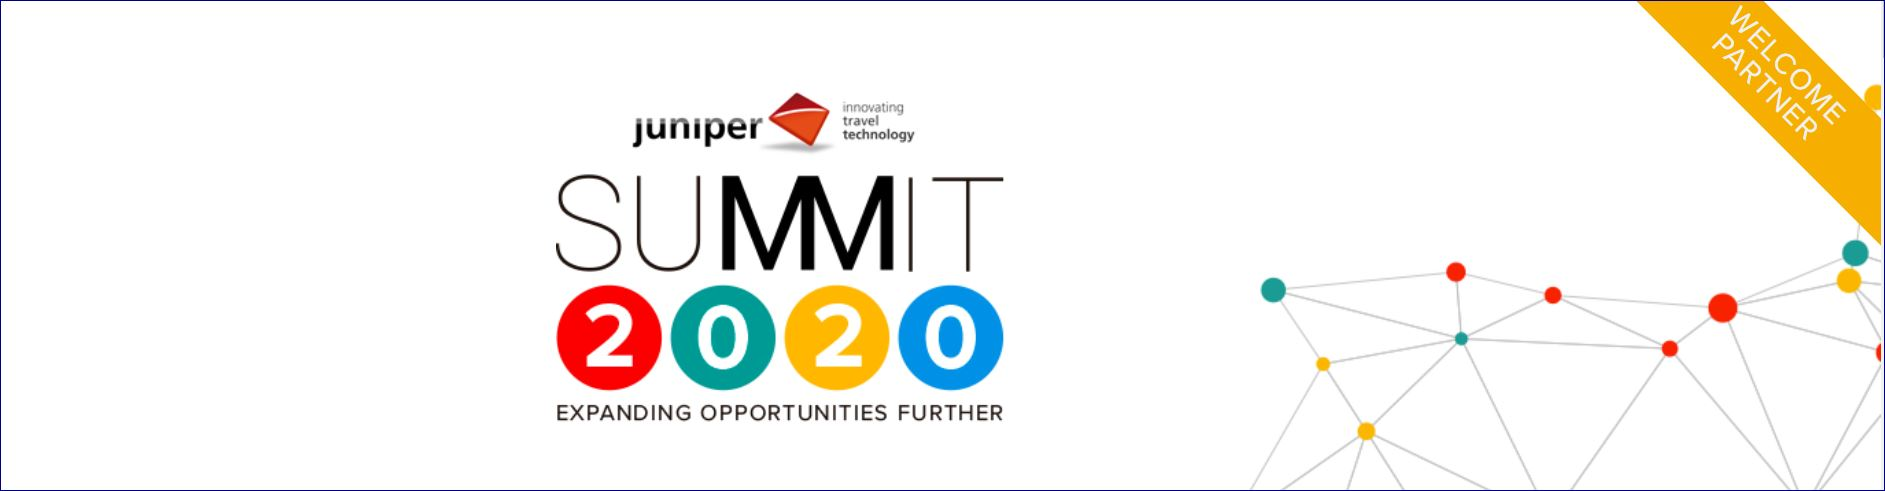 Juniper Partner Summit 2020